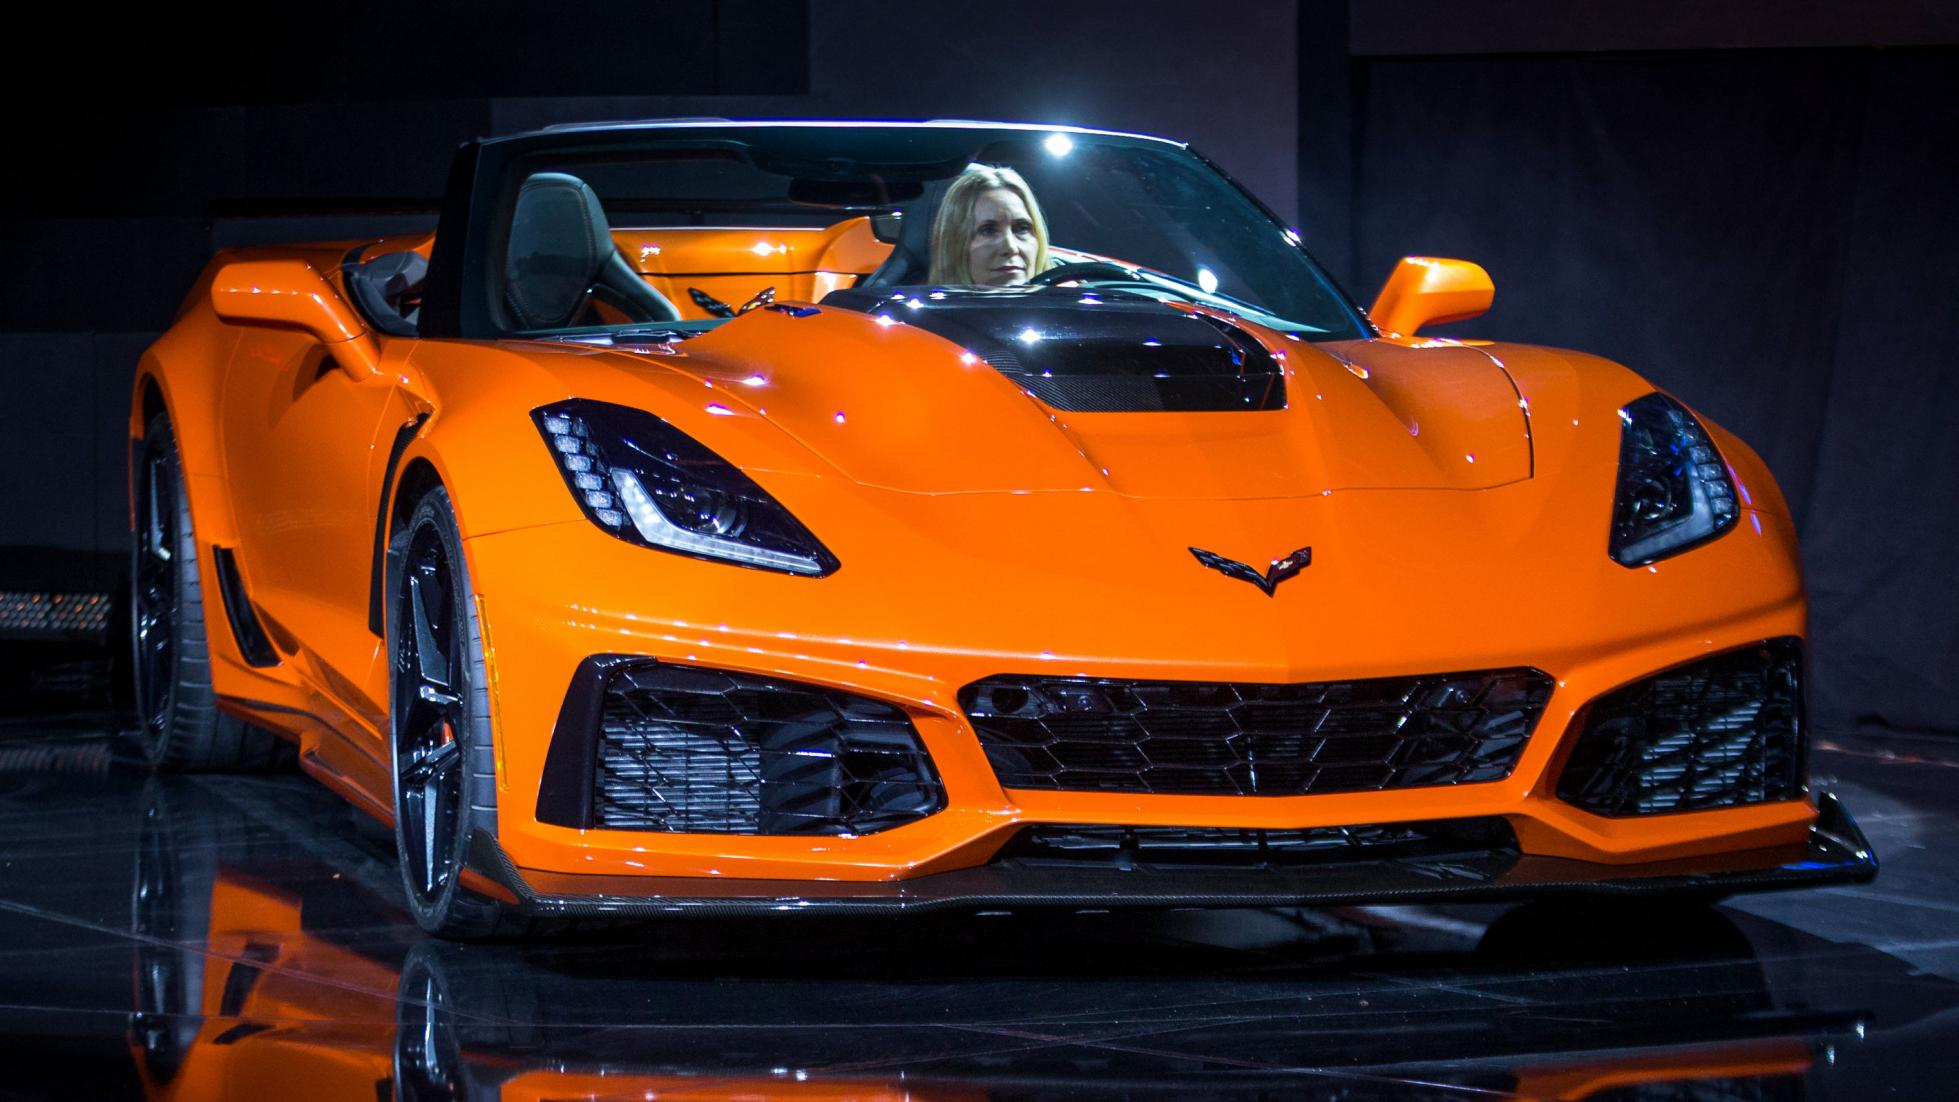 The 2019 Corvette ZR1 Convertible makes its world debut Tuesday, November 28, 2017 in Los Angeles, California. The Corvette ZR1's unique aero package is central to the coupe's 212-mph top speed generated by the 755 horsepower LT5 6.2L supercharged engine. The ZR1 convertible will start at $123,995 and will go on sale in the spring of 2018. (Photo by Dan MacMedan for Chevrolet)